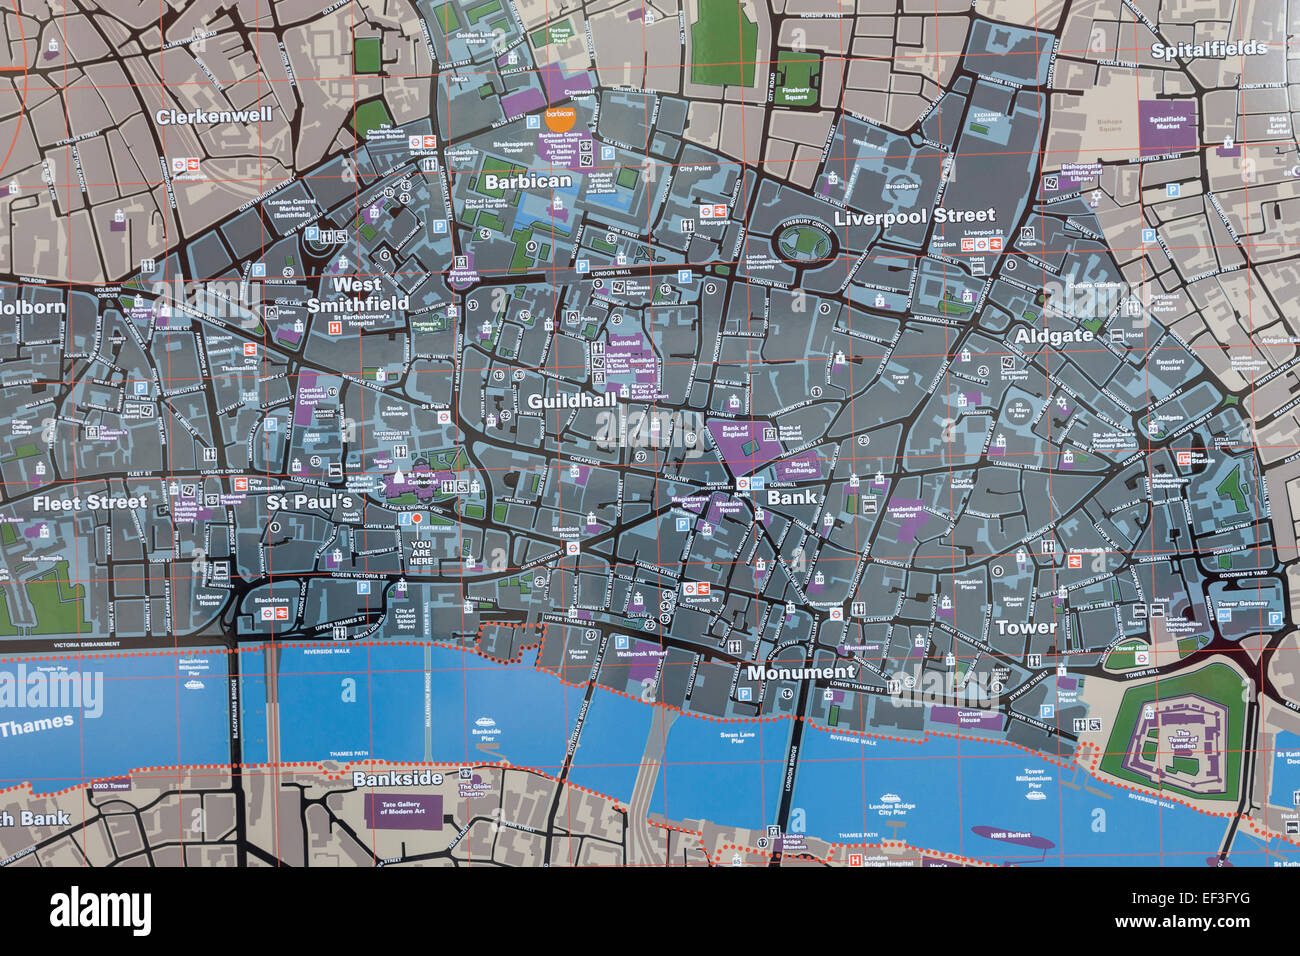 england london street map of the city of london